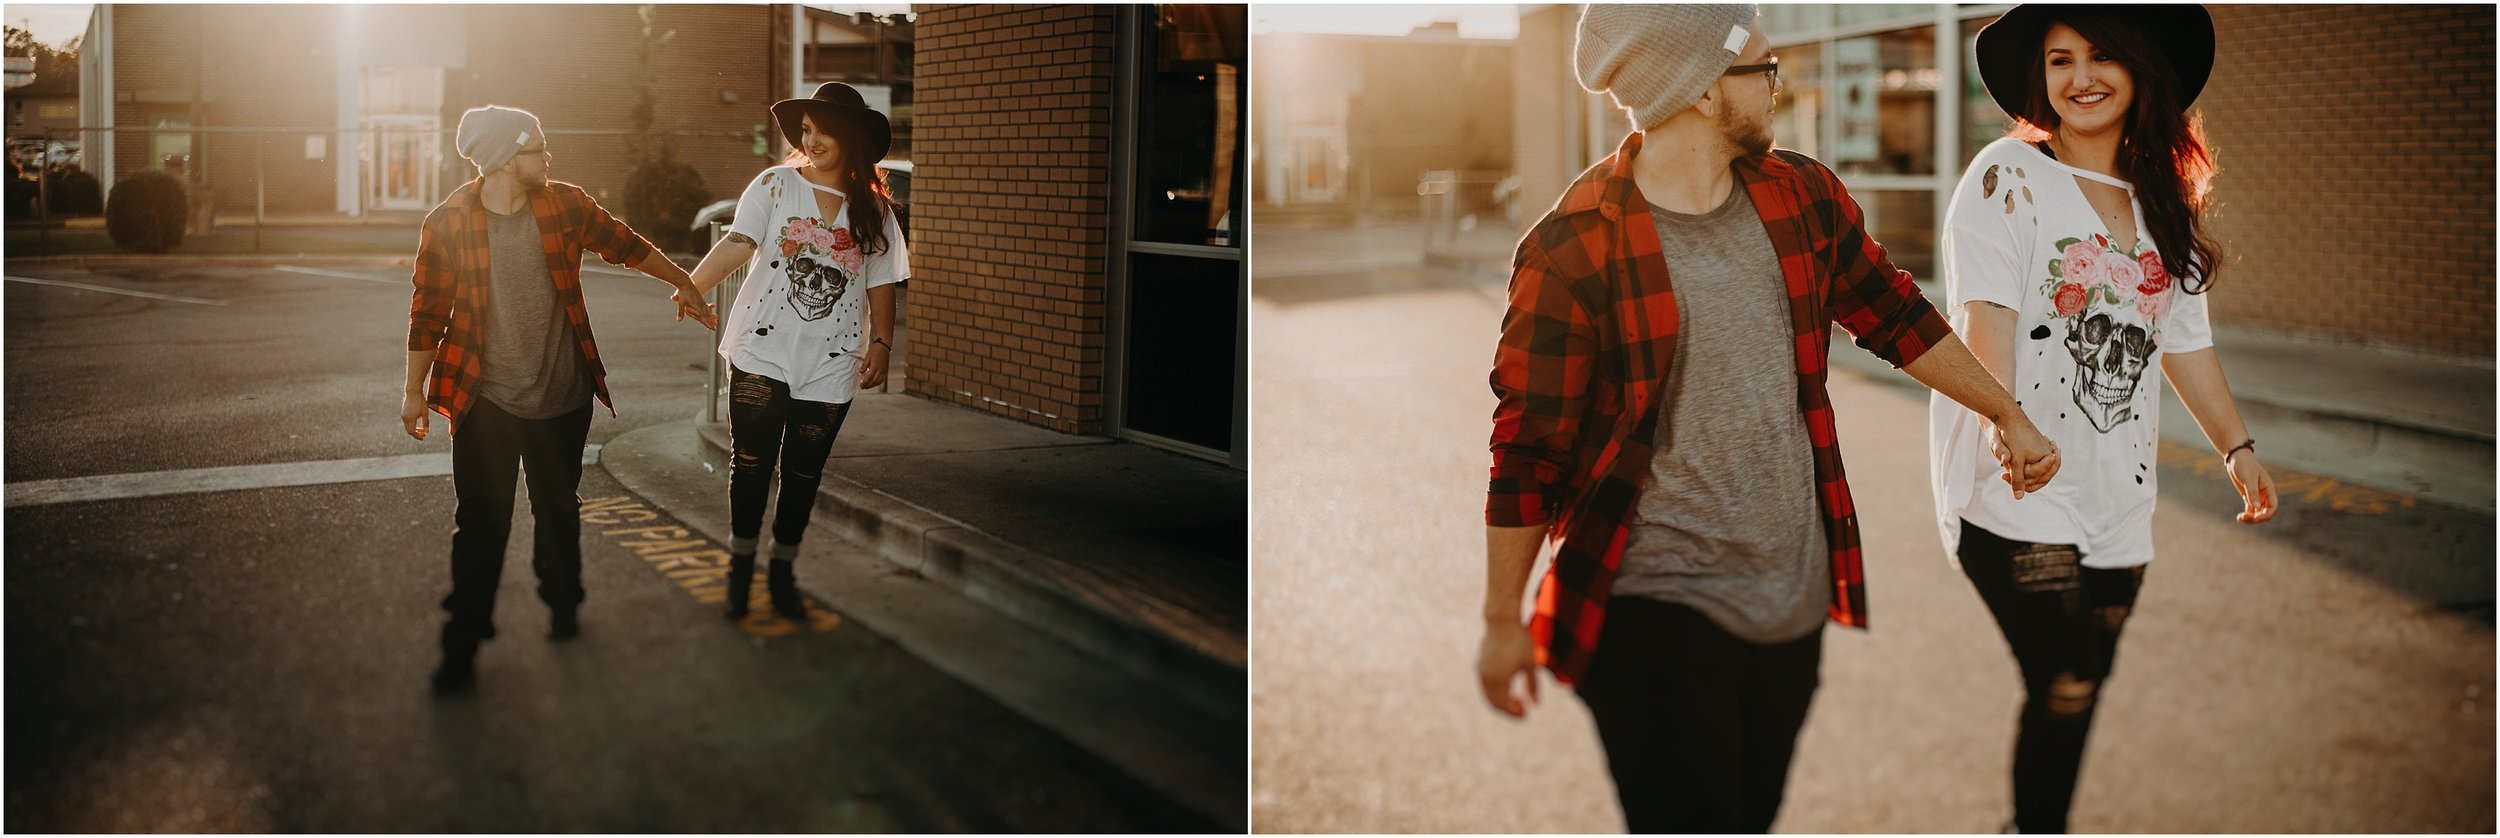 Hip couple walks hand in hand in parking lot during sunset